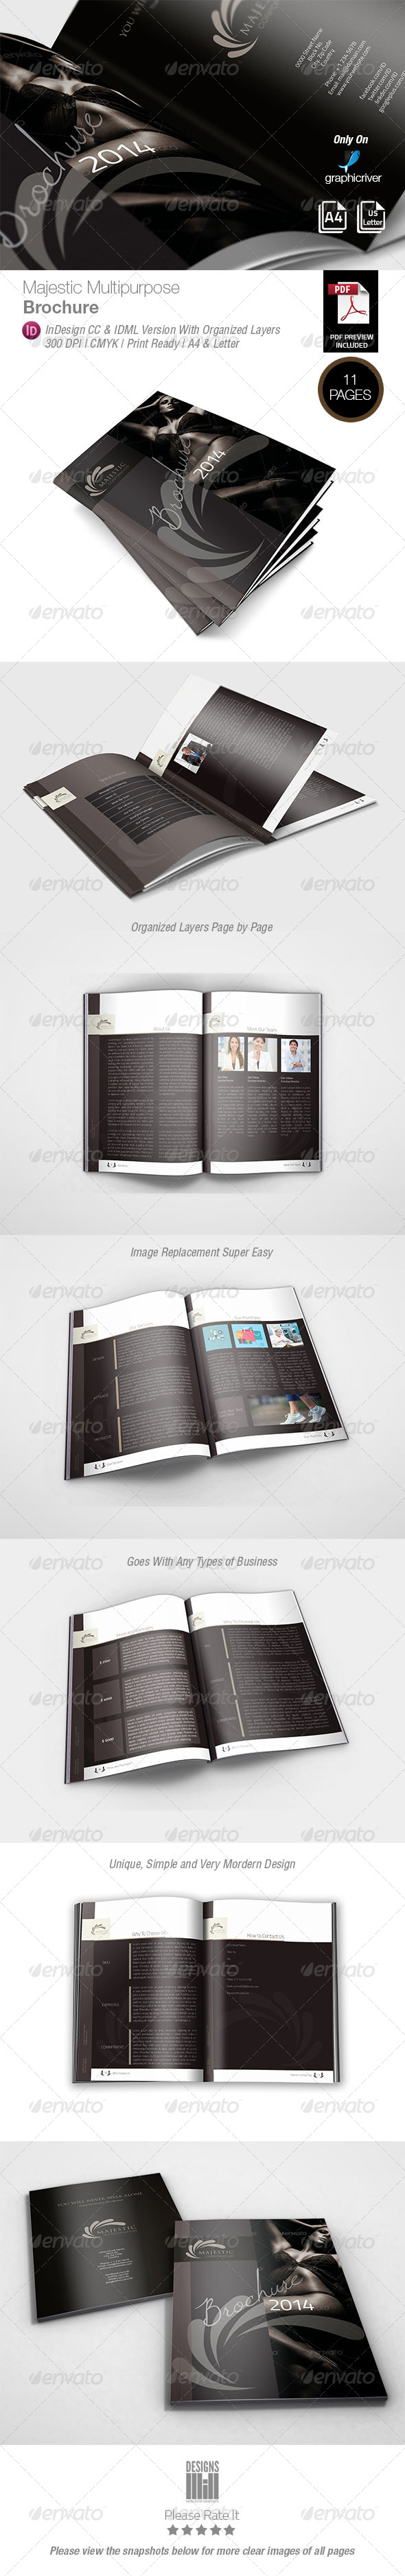 GraphicRiver Majestic Multipurpose Brochure 8334254